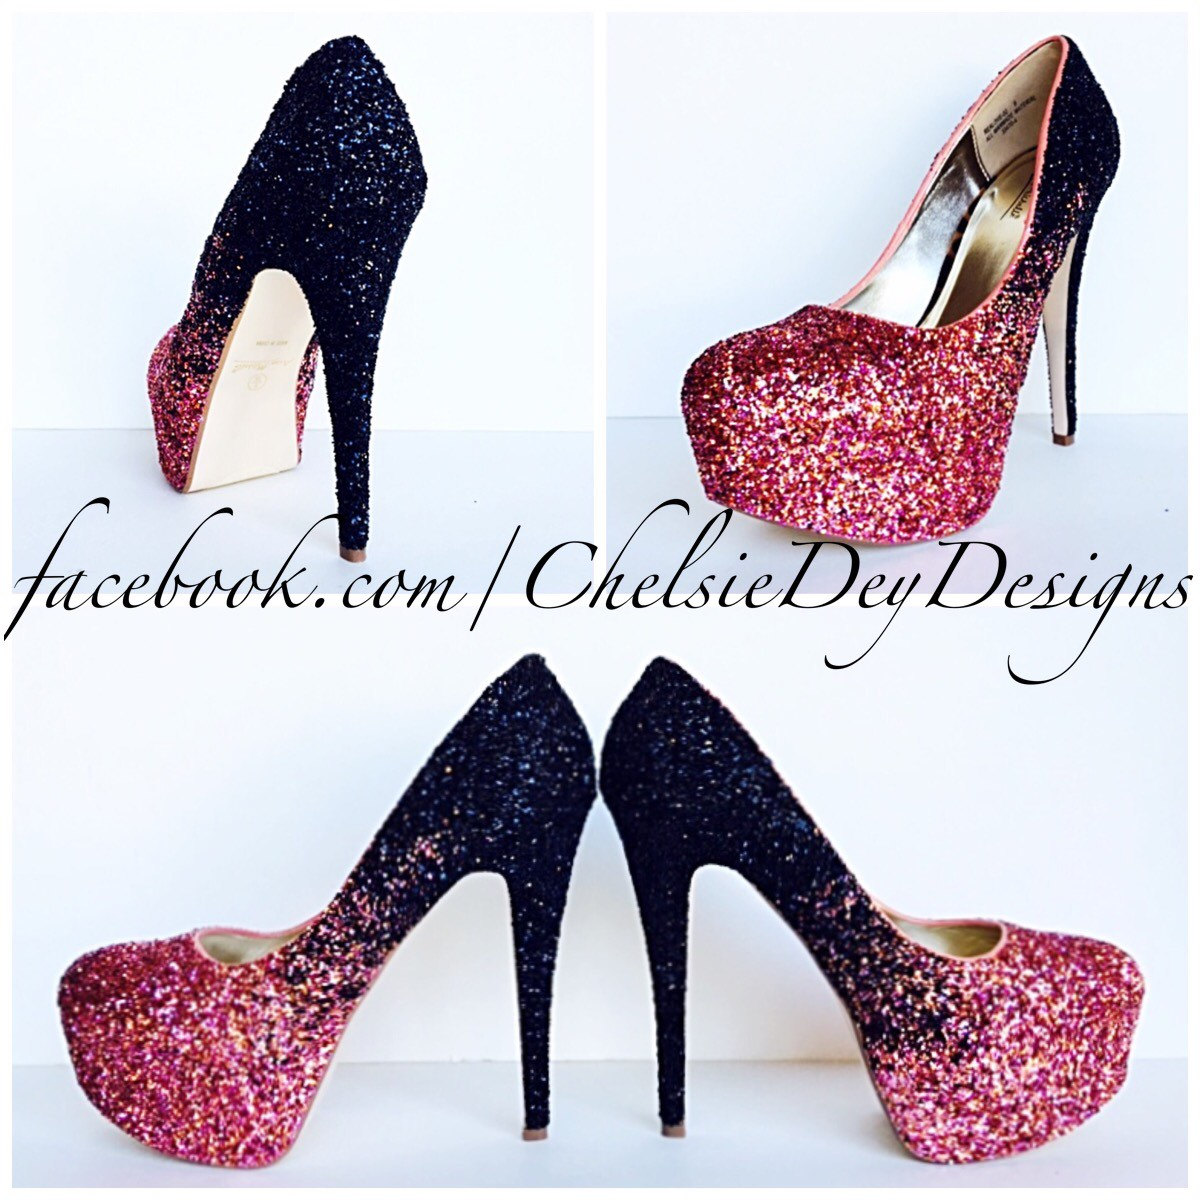 Glitter High Heels - Coral and Black Pumps - Ombre Platform Shoes ... 9112c269f972